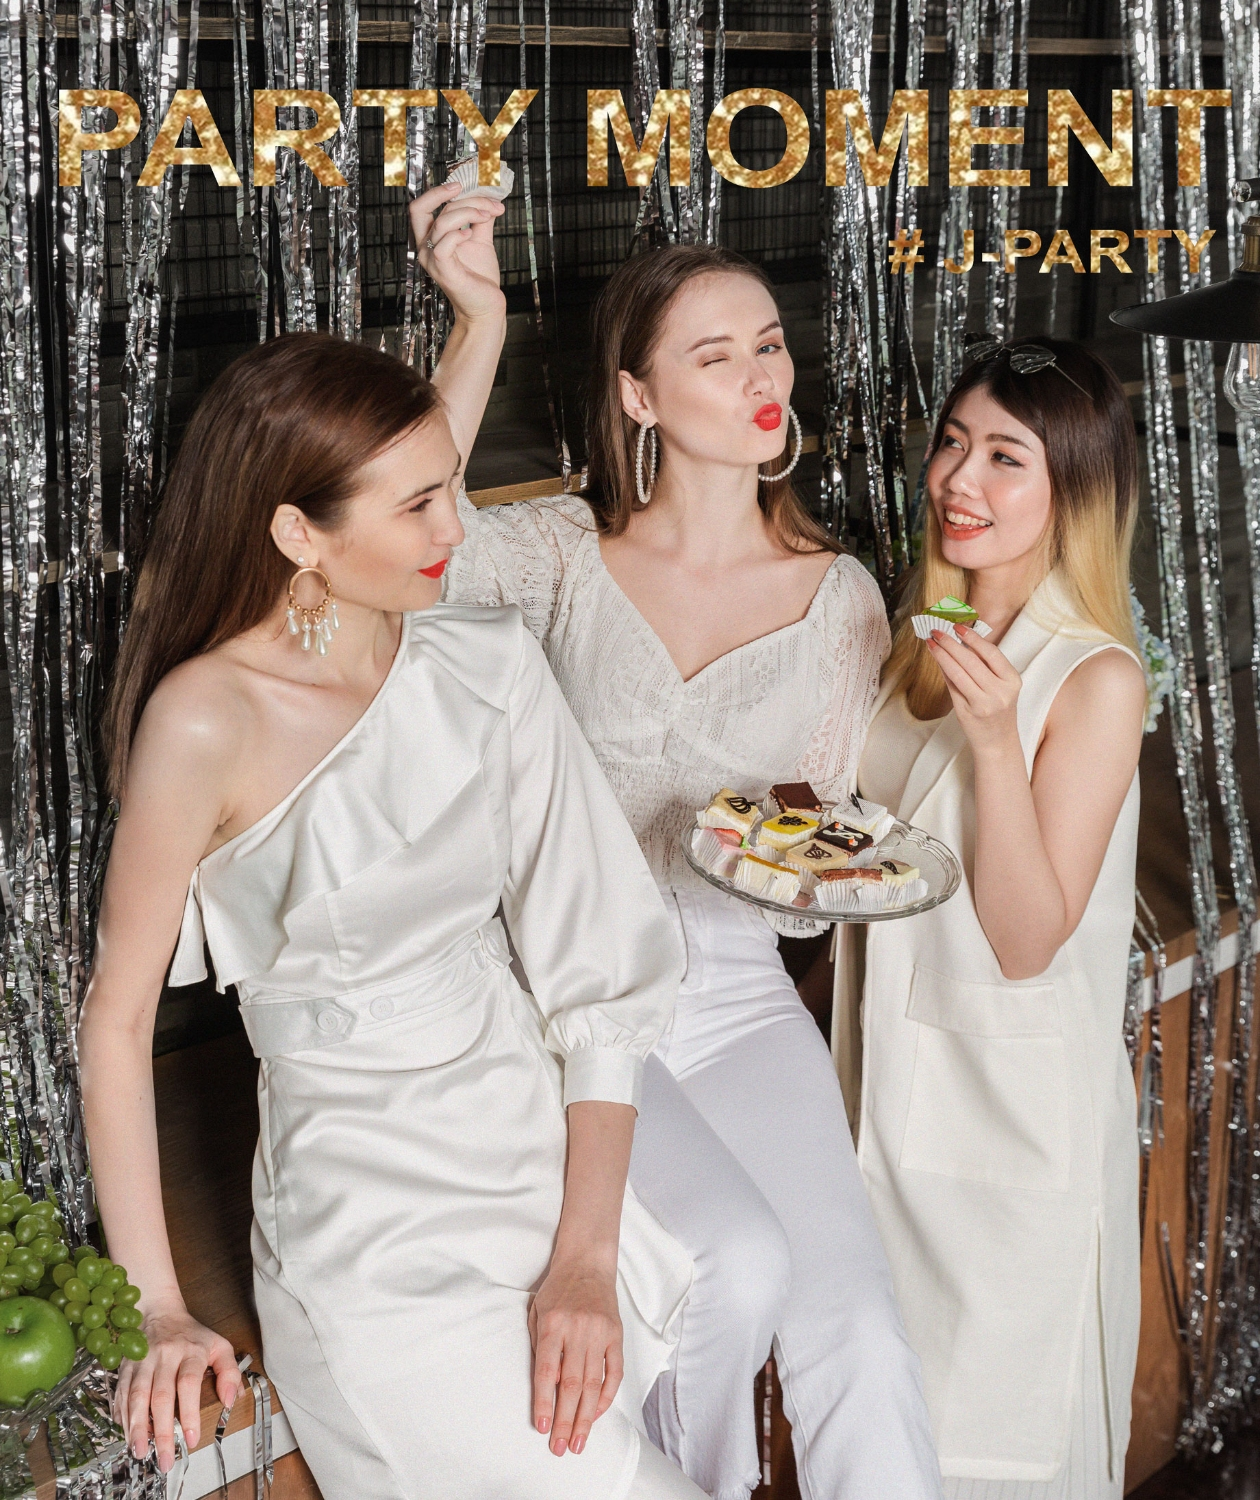 Party Moment